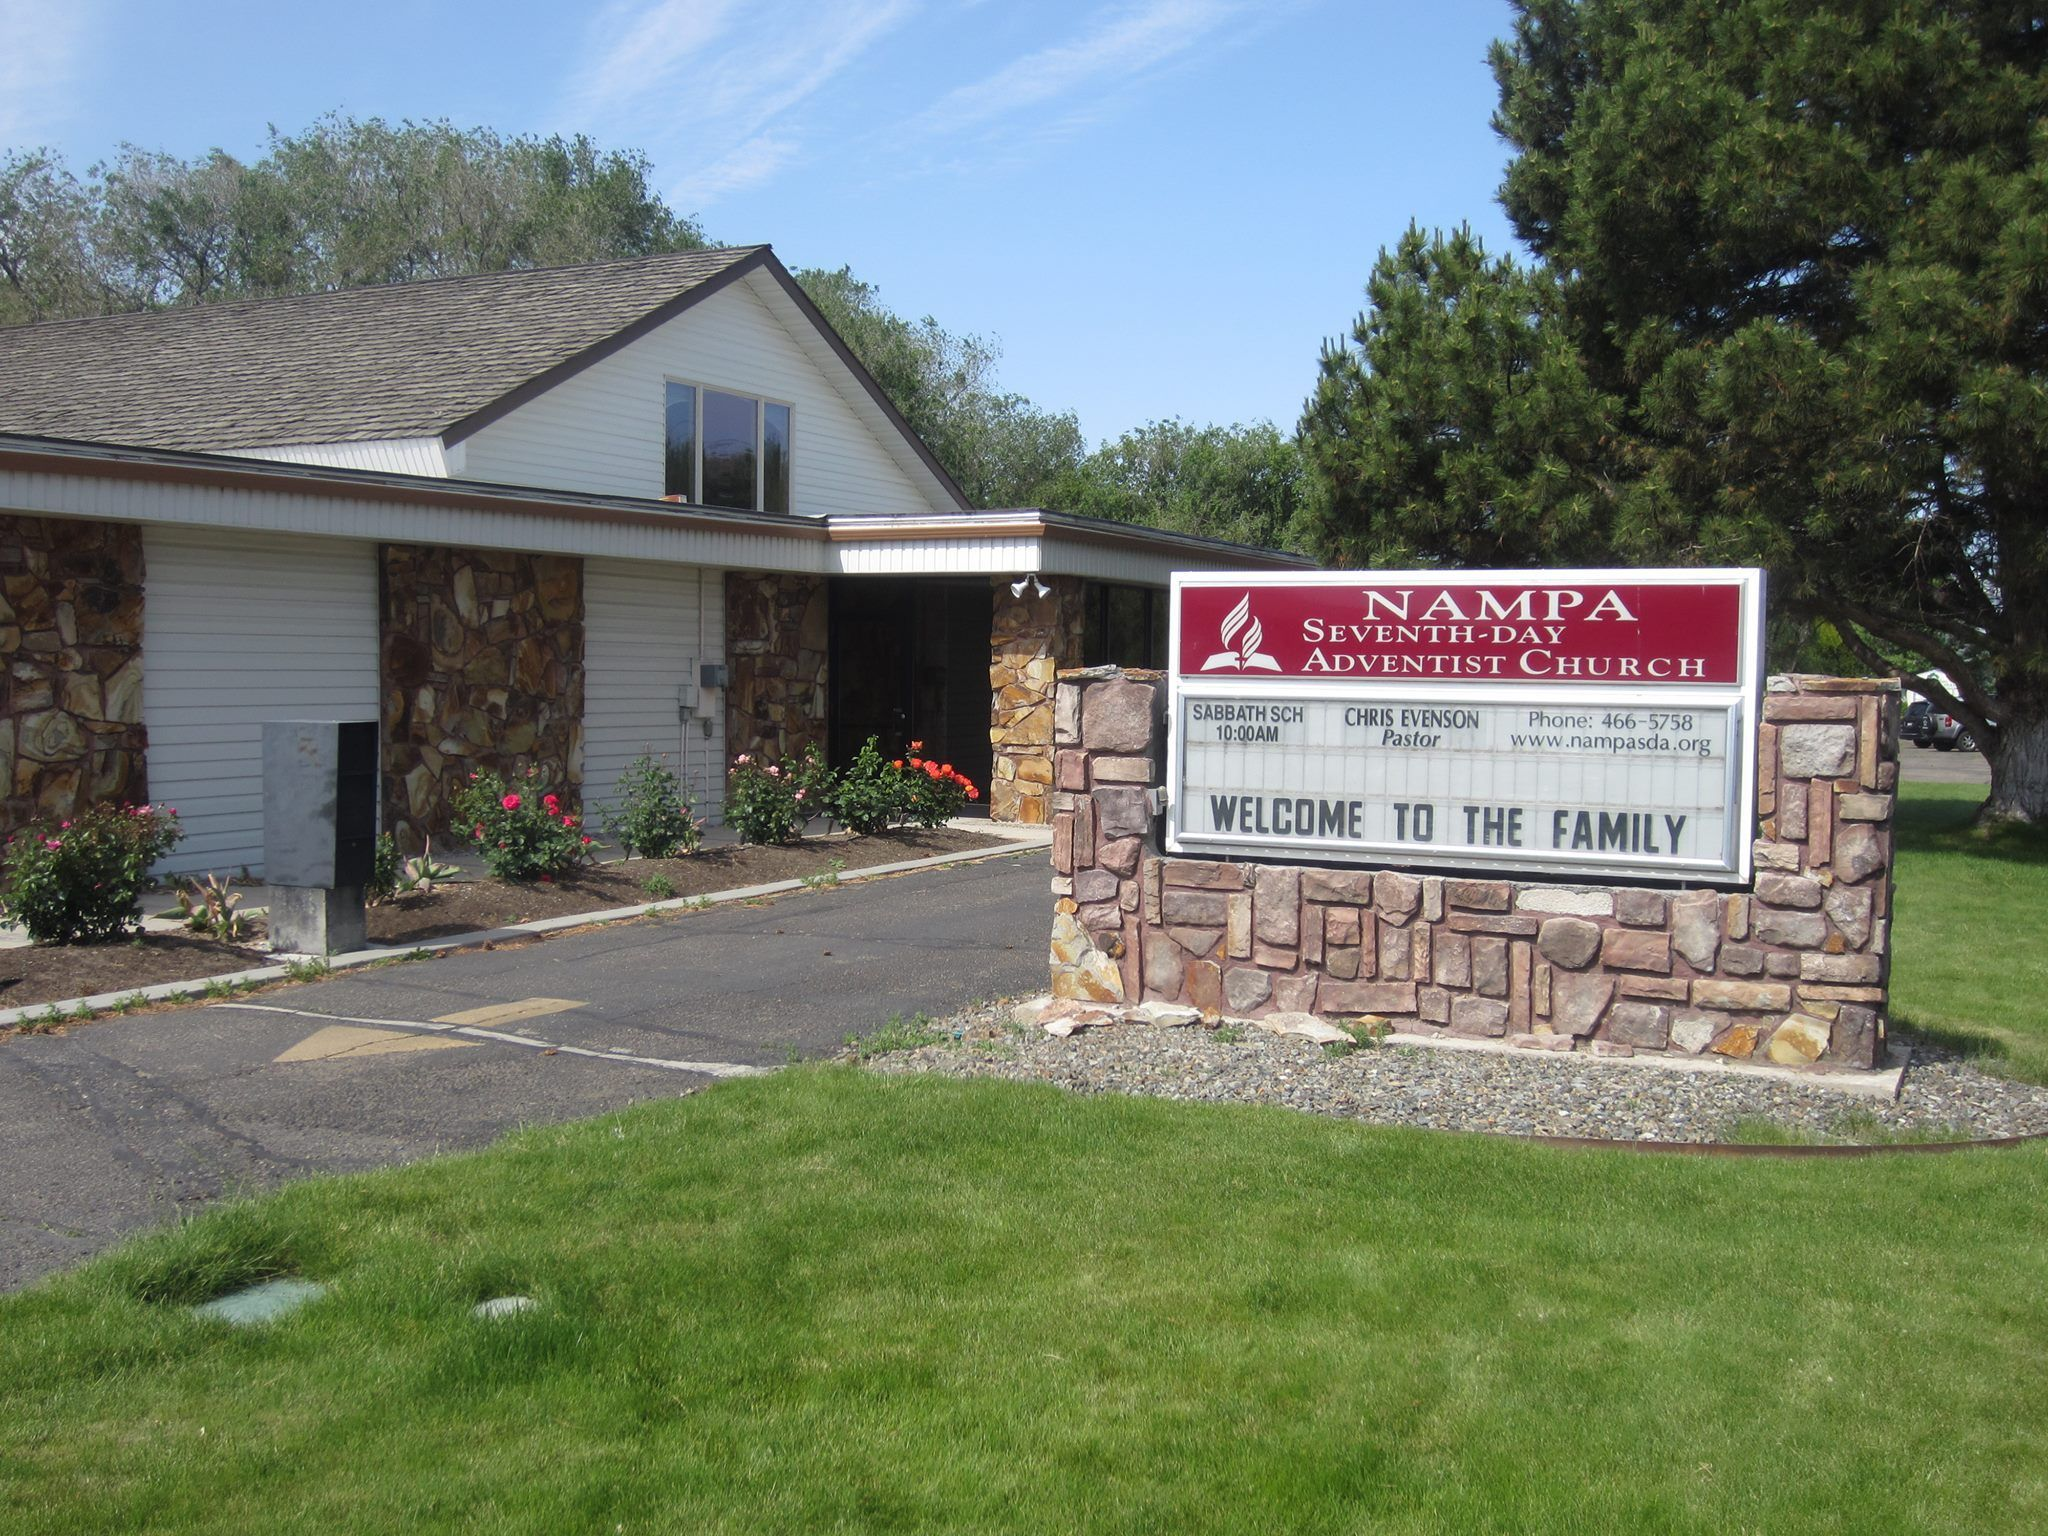 Seventh Day Adventist Nampa